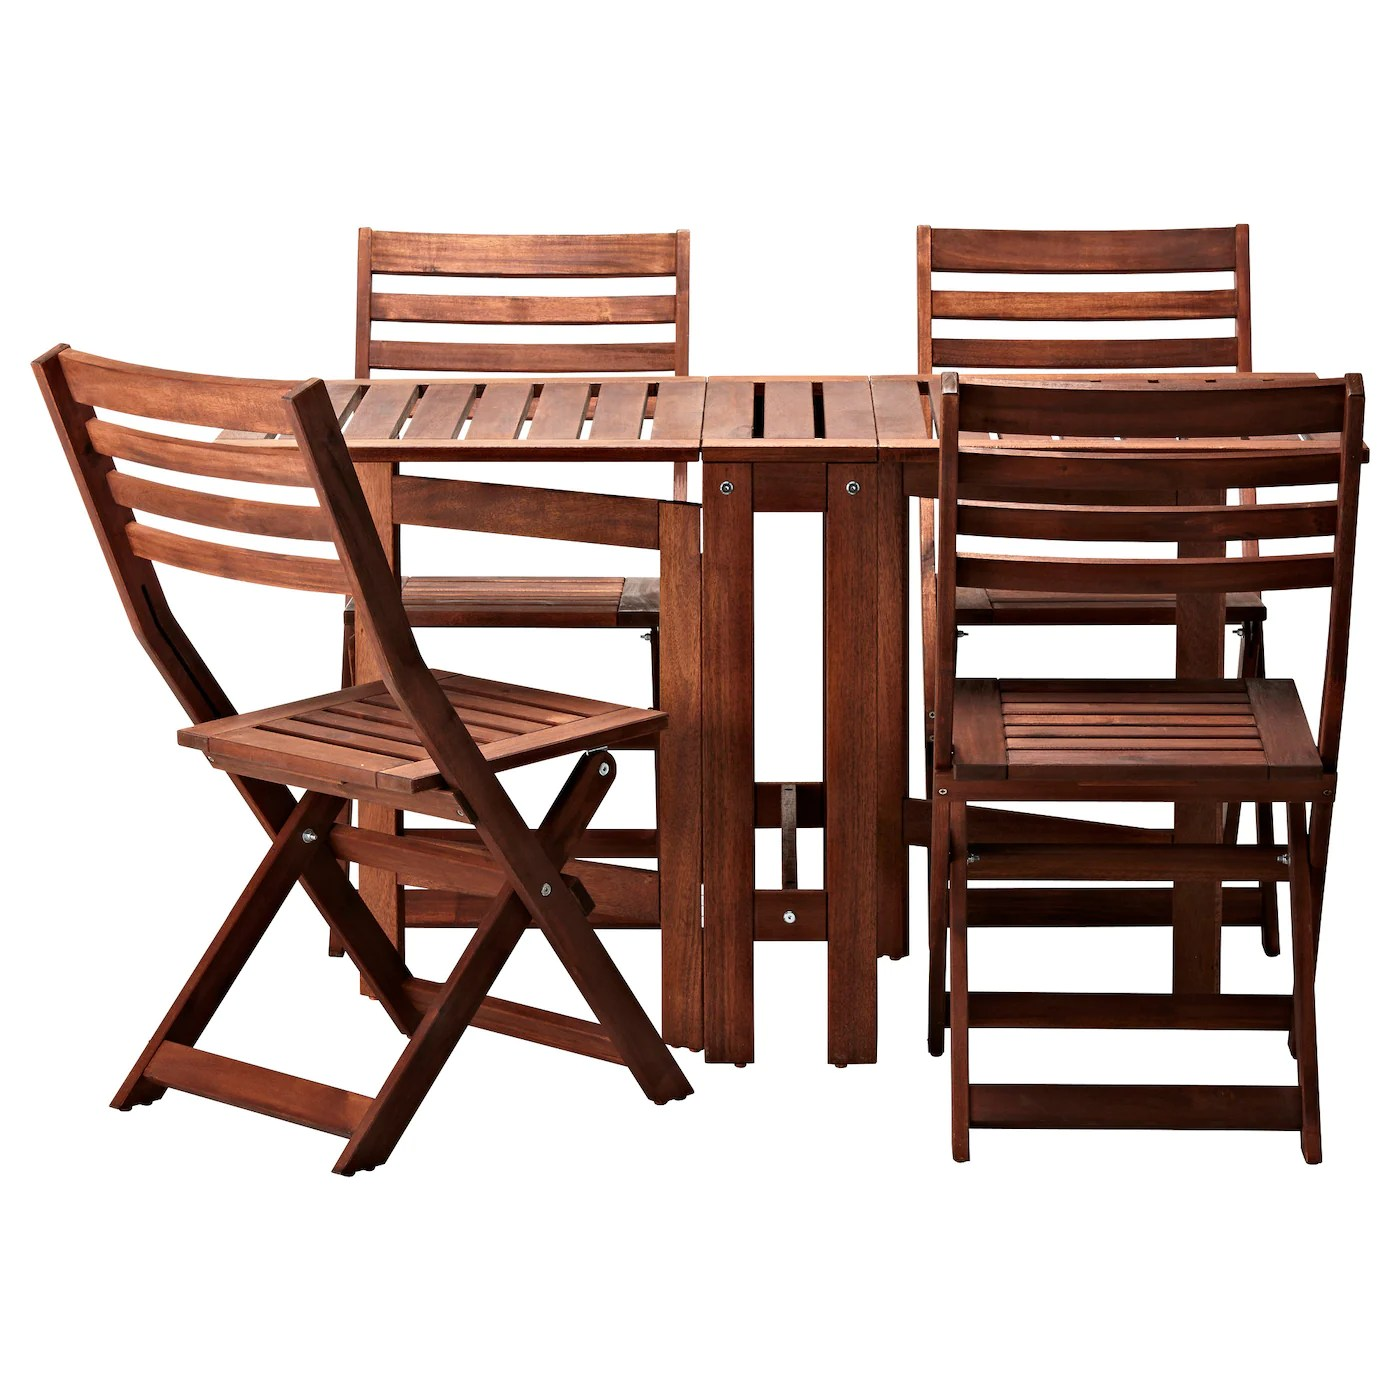 brown wooden folding chairs armchair cover diy ÄpplarÖ table 434 outdoor stained ikea